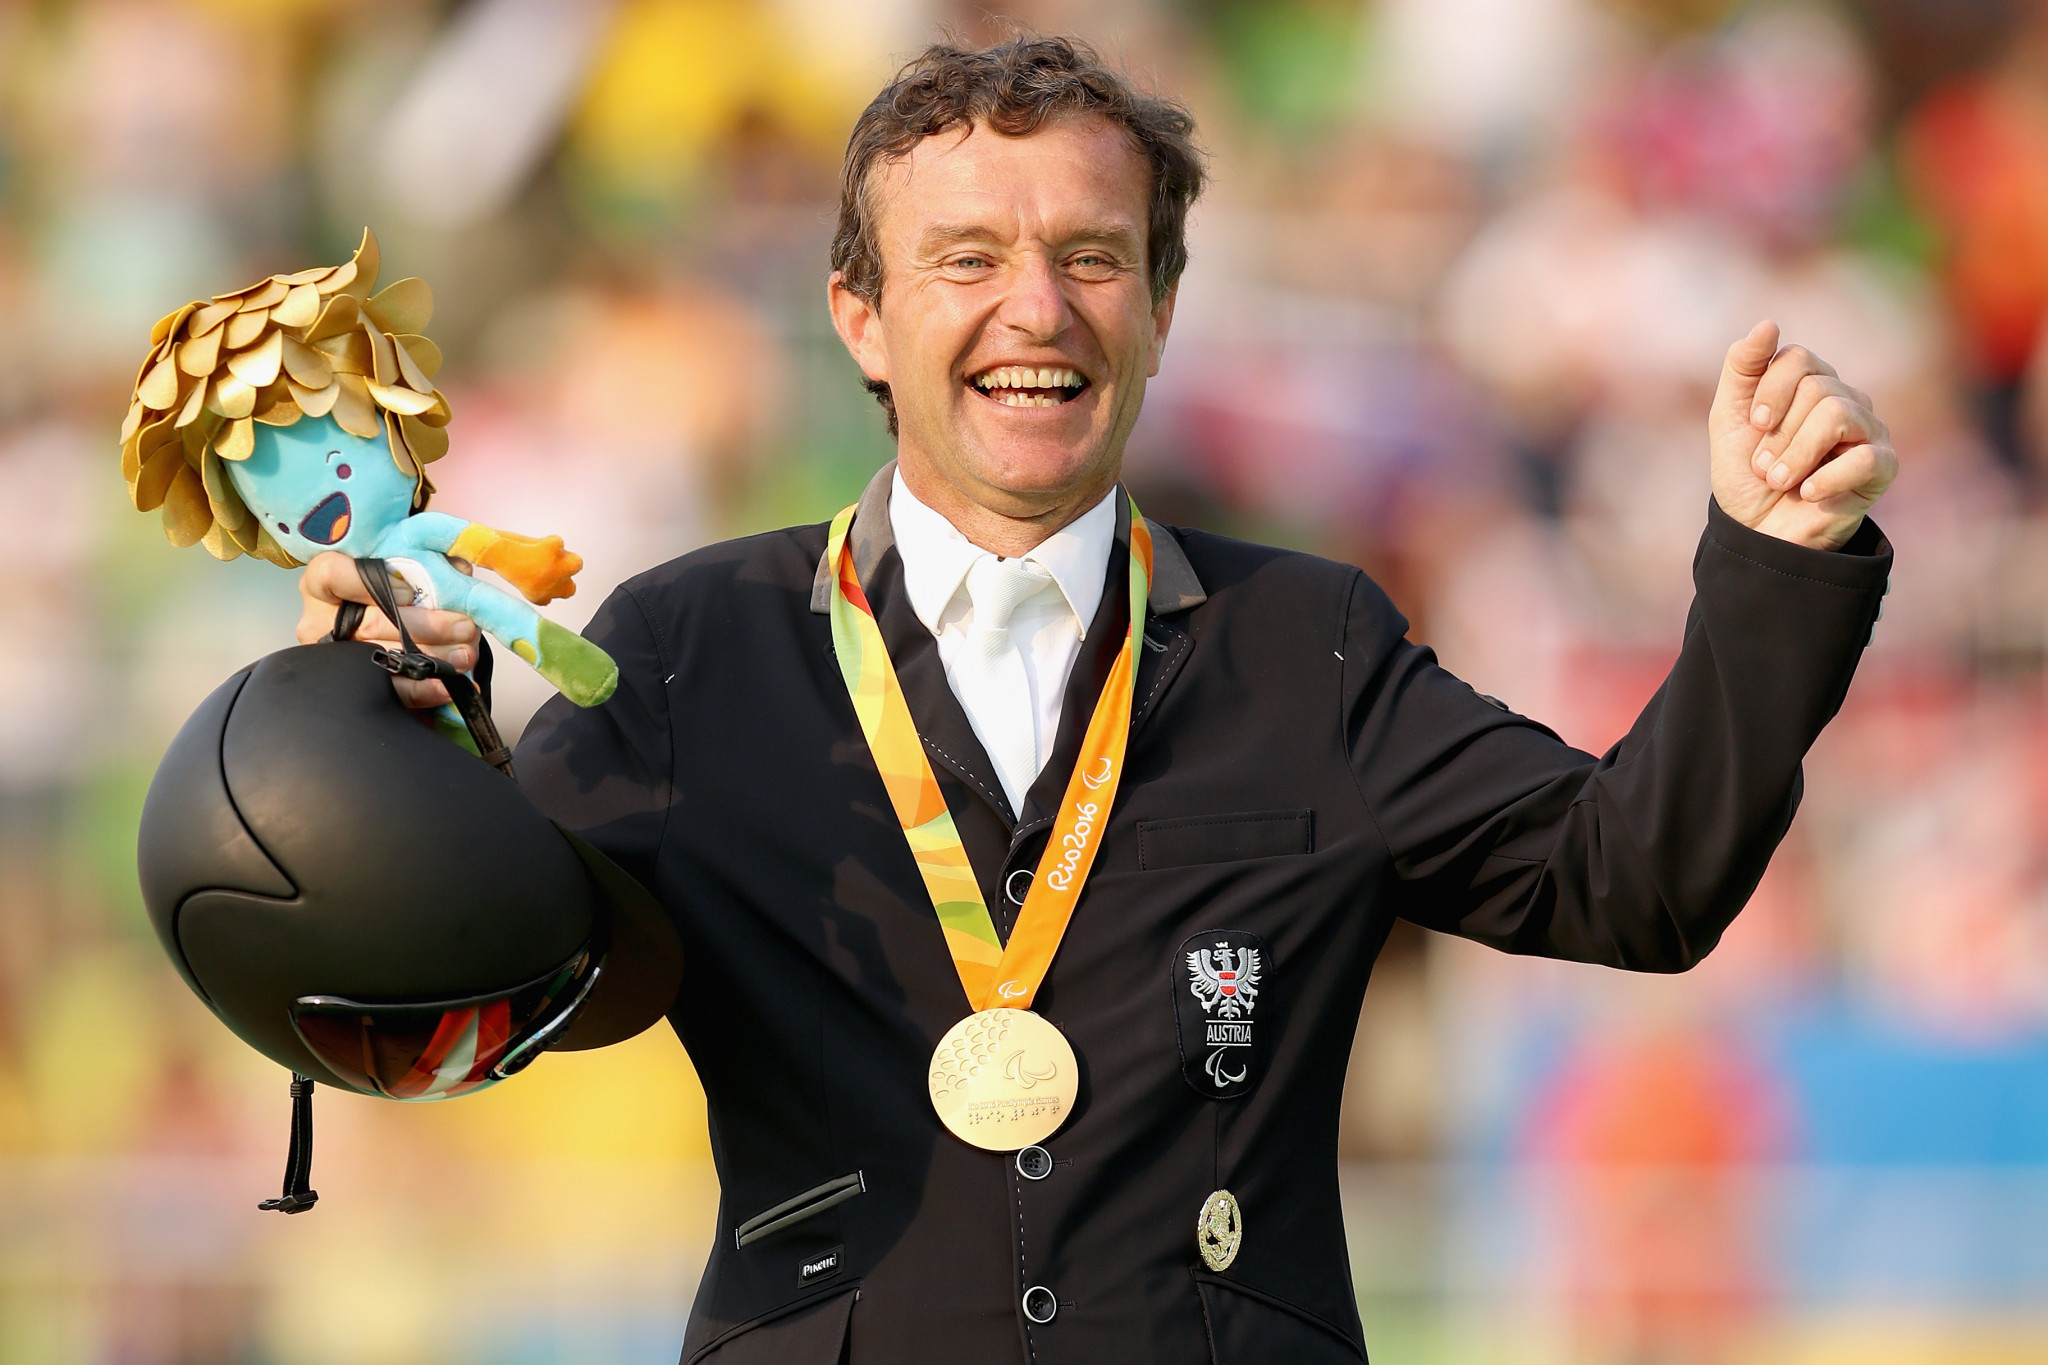 Pepo Puch was Austria's lone gold medal at the Rio 2016 Paralympics ©Getty Images